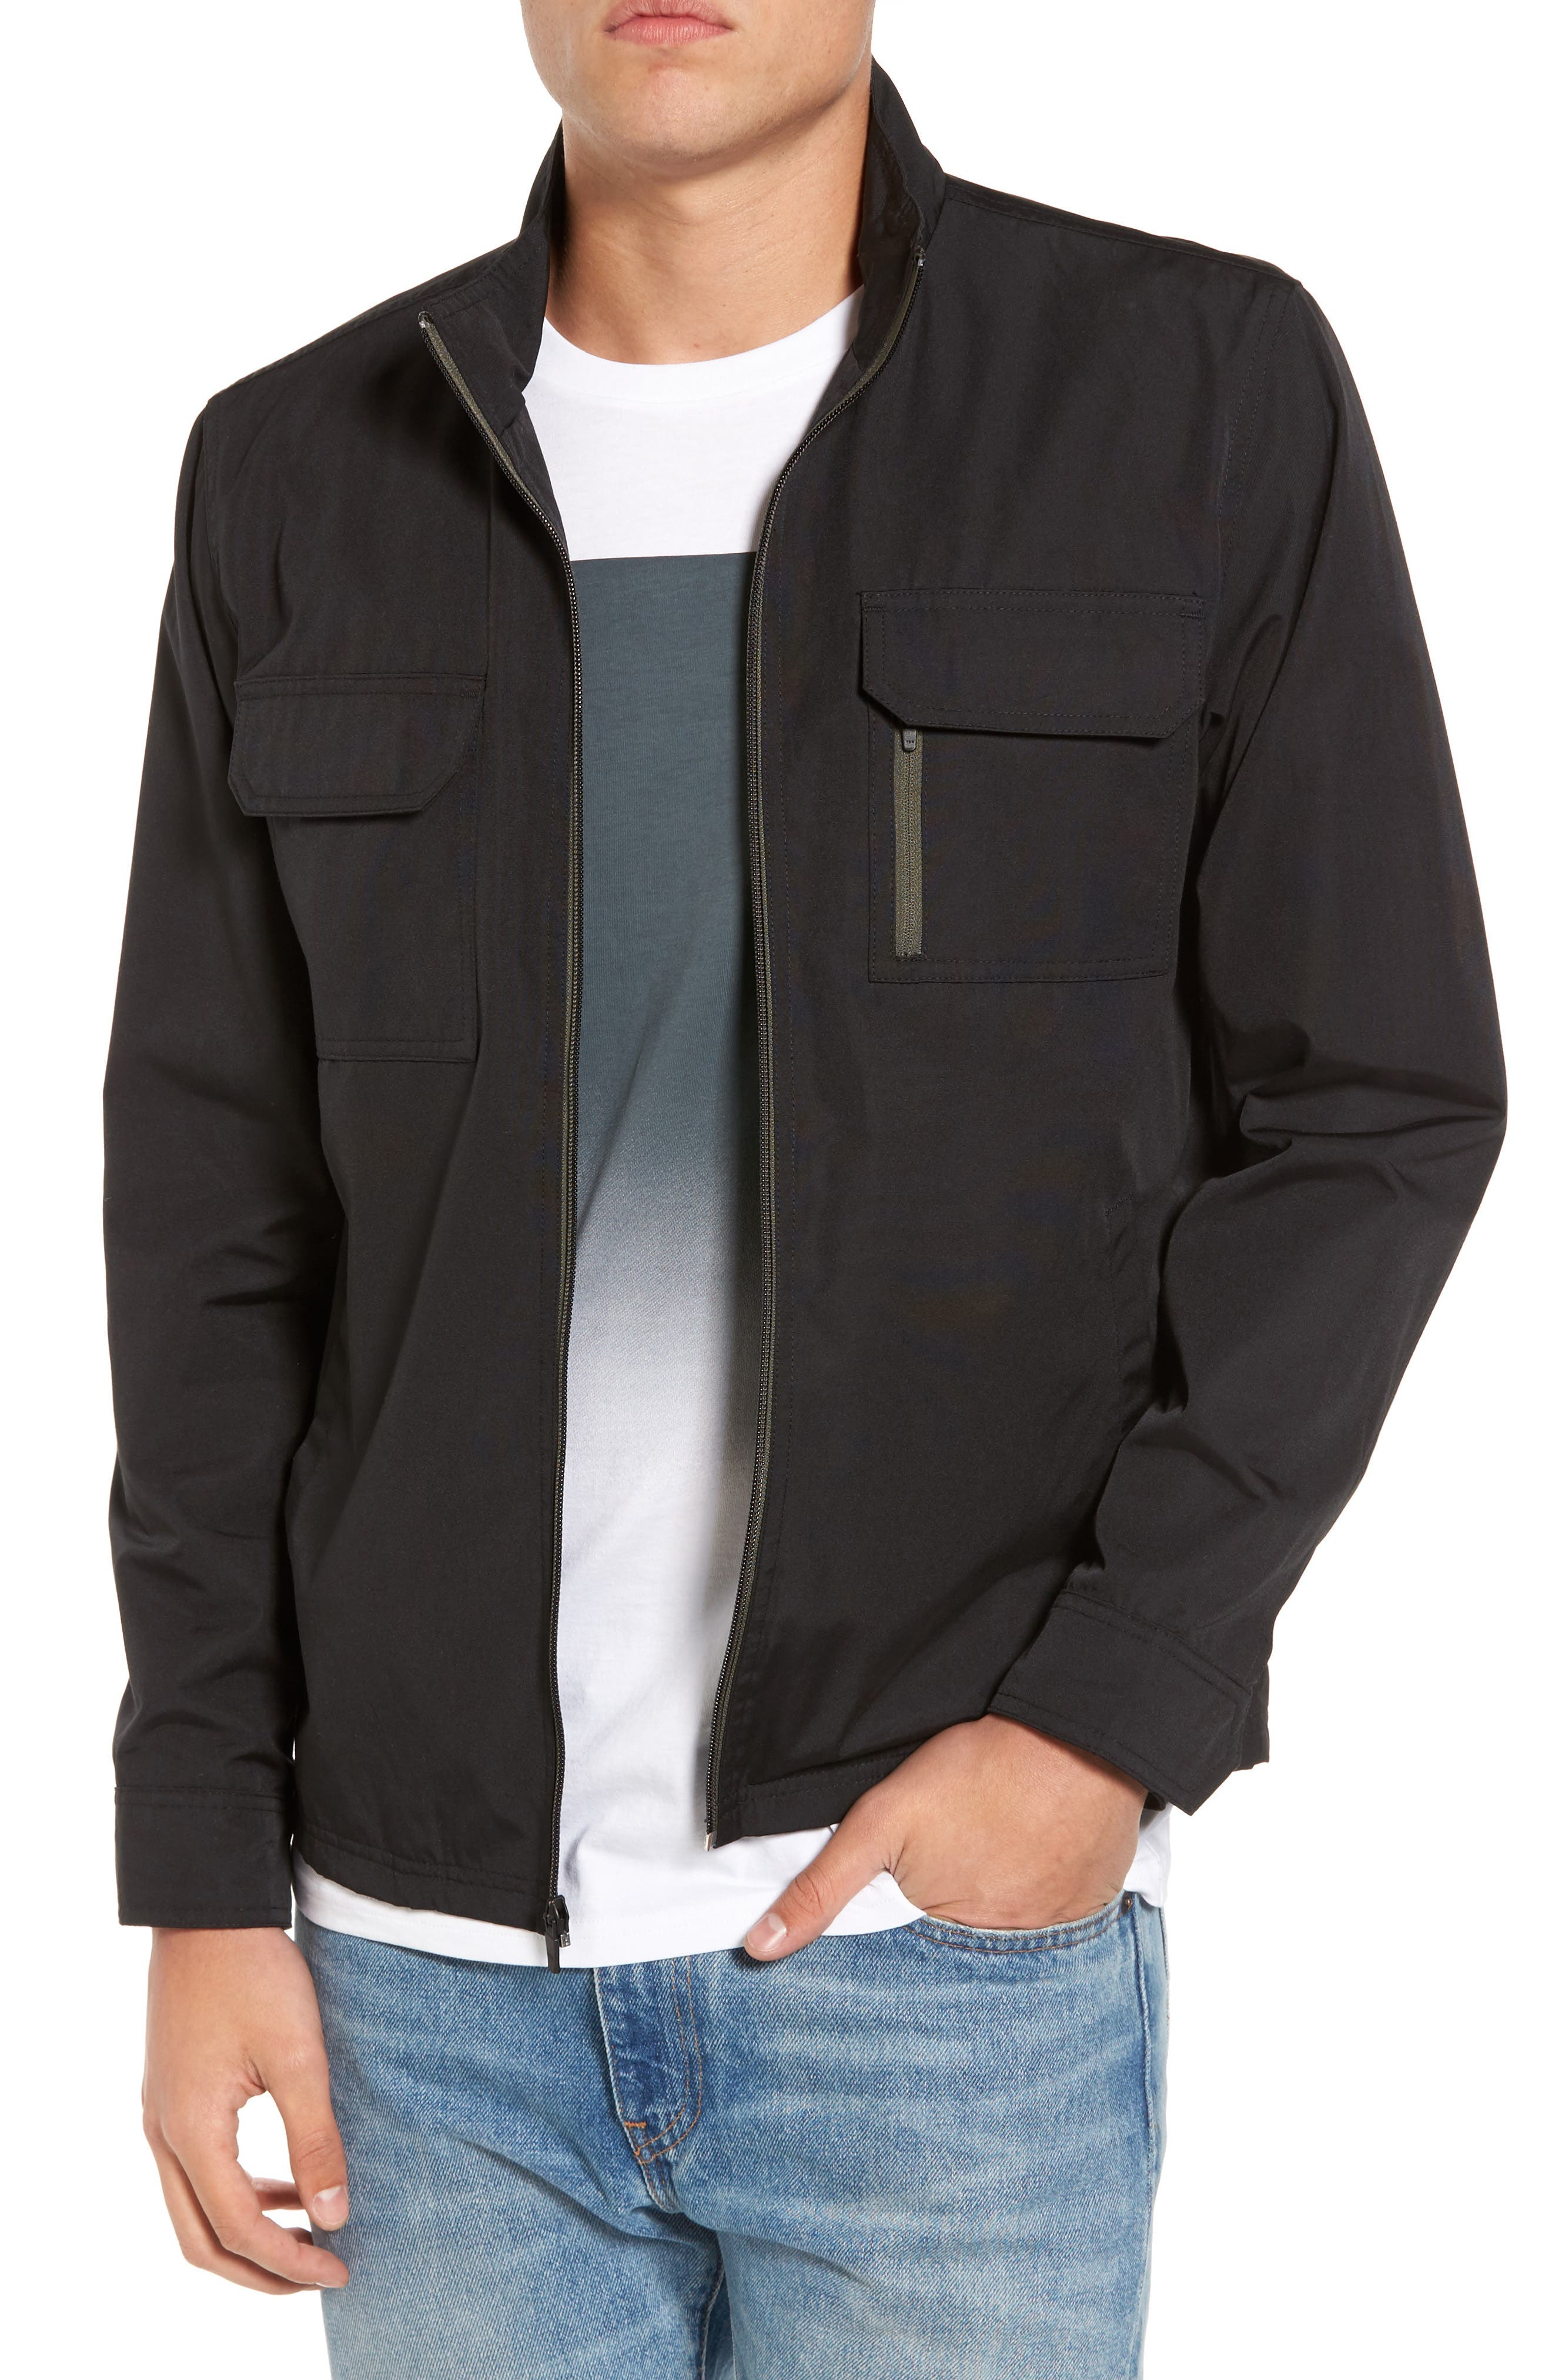 Staple Jacket,                         Main,                         color, Solid Black